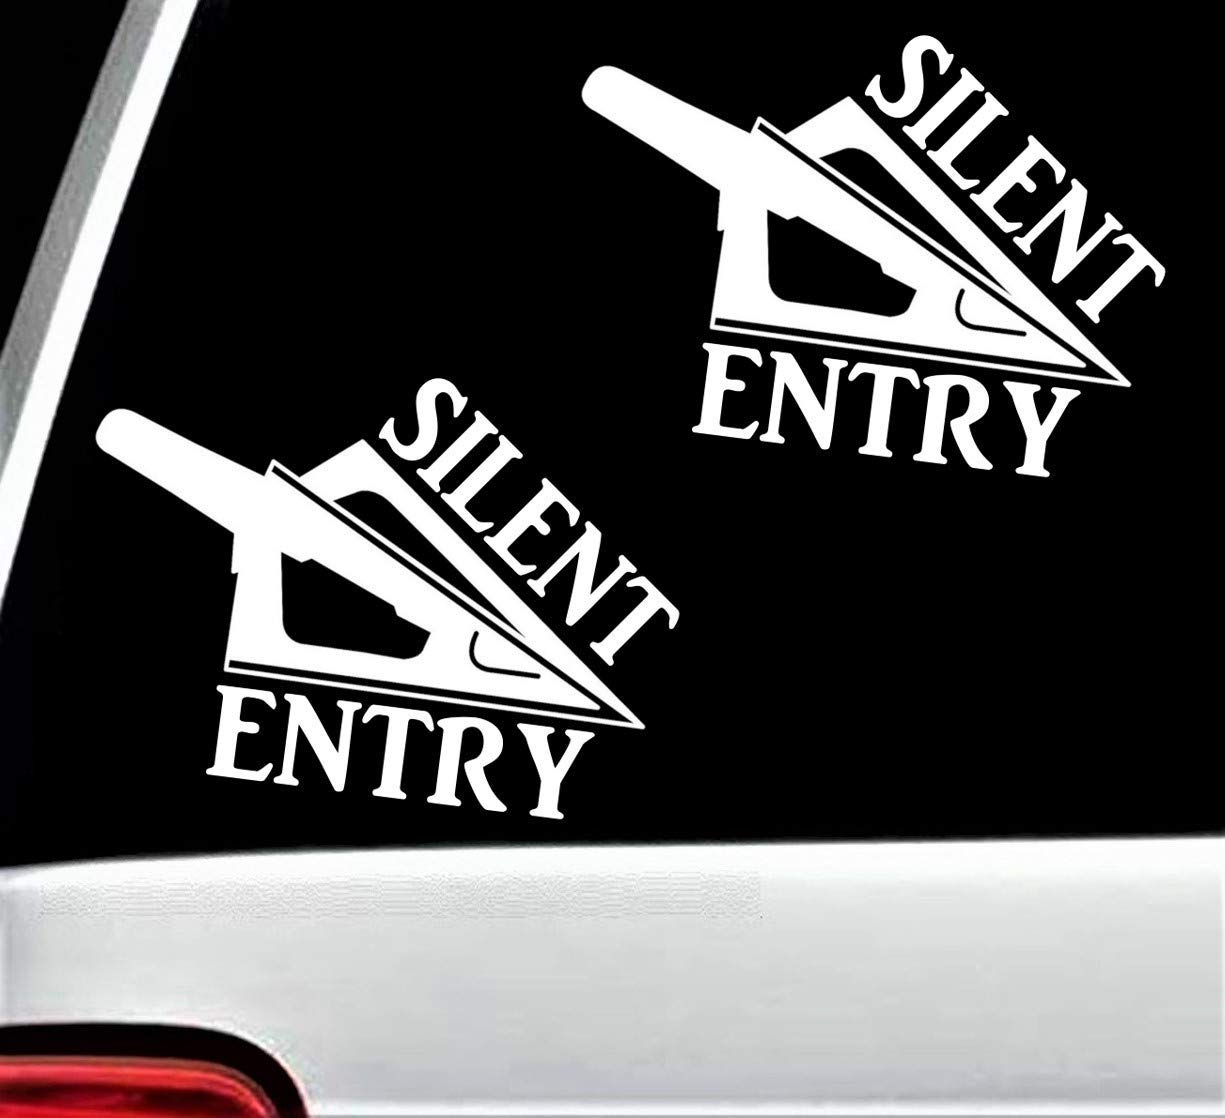 2-Count Silent Entry Decal Sticker for Car Window BG 192